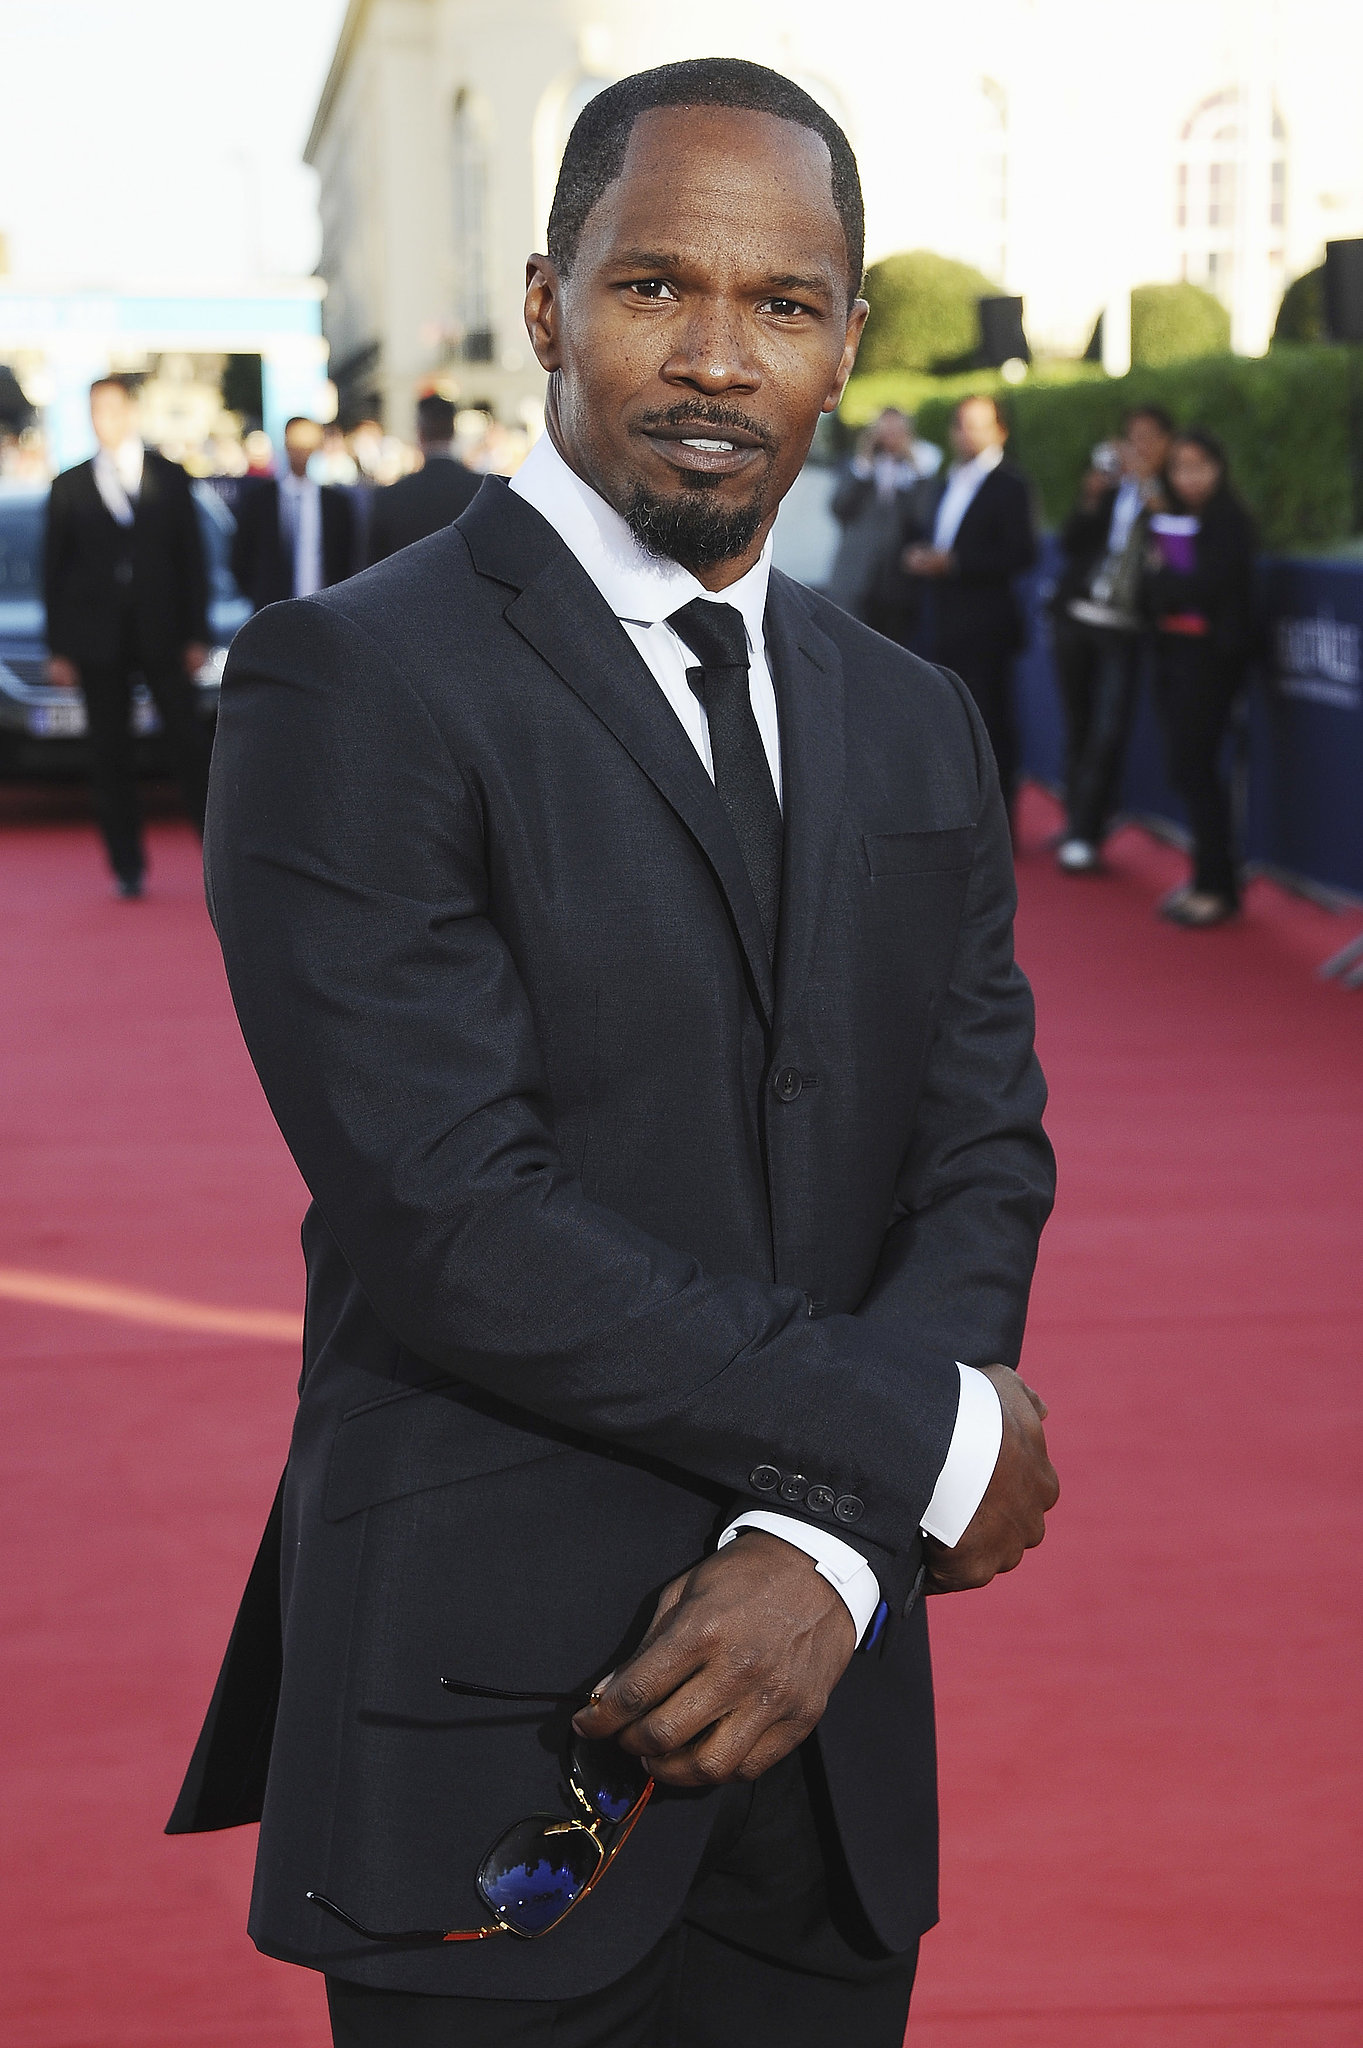 Jamie Foxx looked suave at the premiere of White House Down.